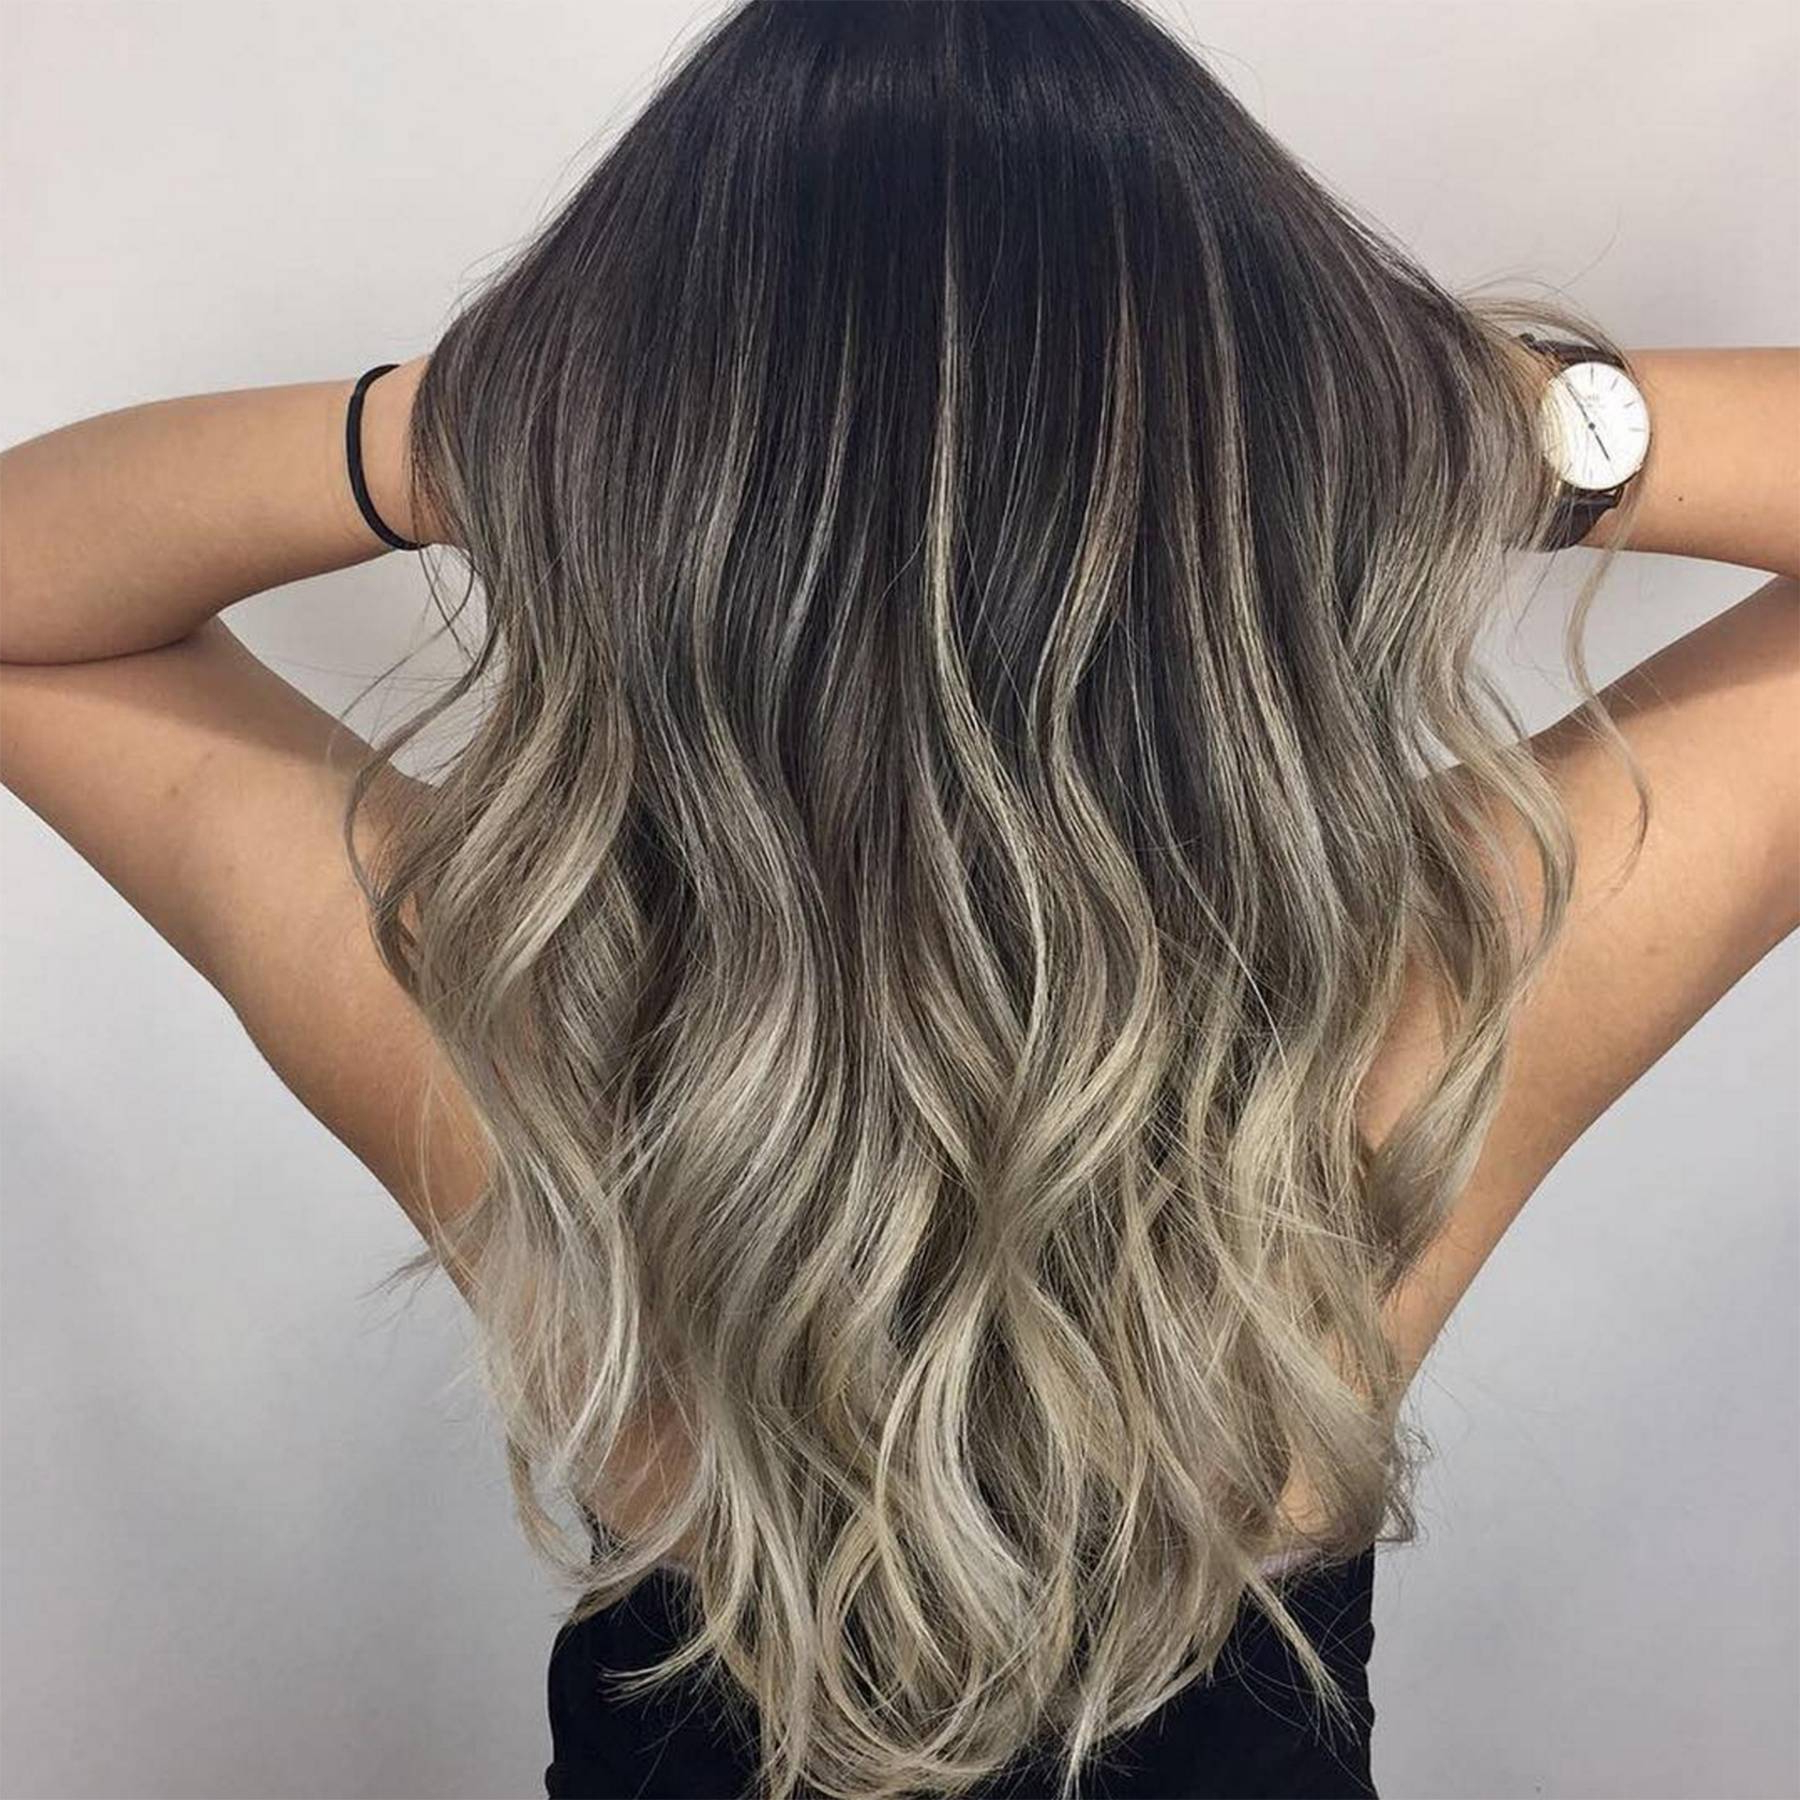 Most Recently Released Long Dark Hairstyles With Blonde Contour Balayage Intended For Ash Balayage Inspiration, From Pictures To Products (View 13 of 20)